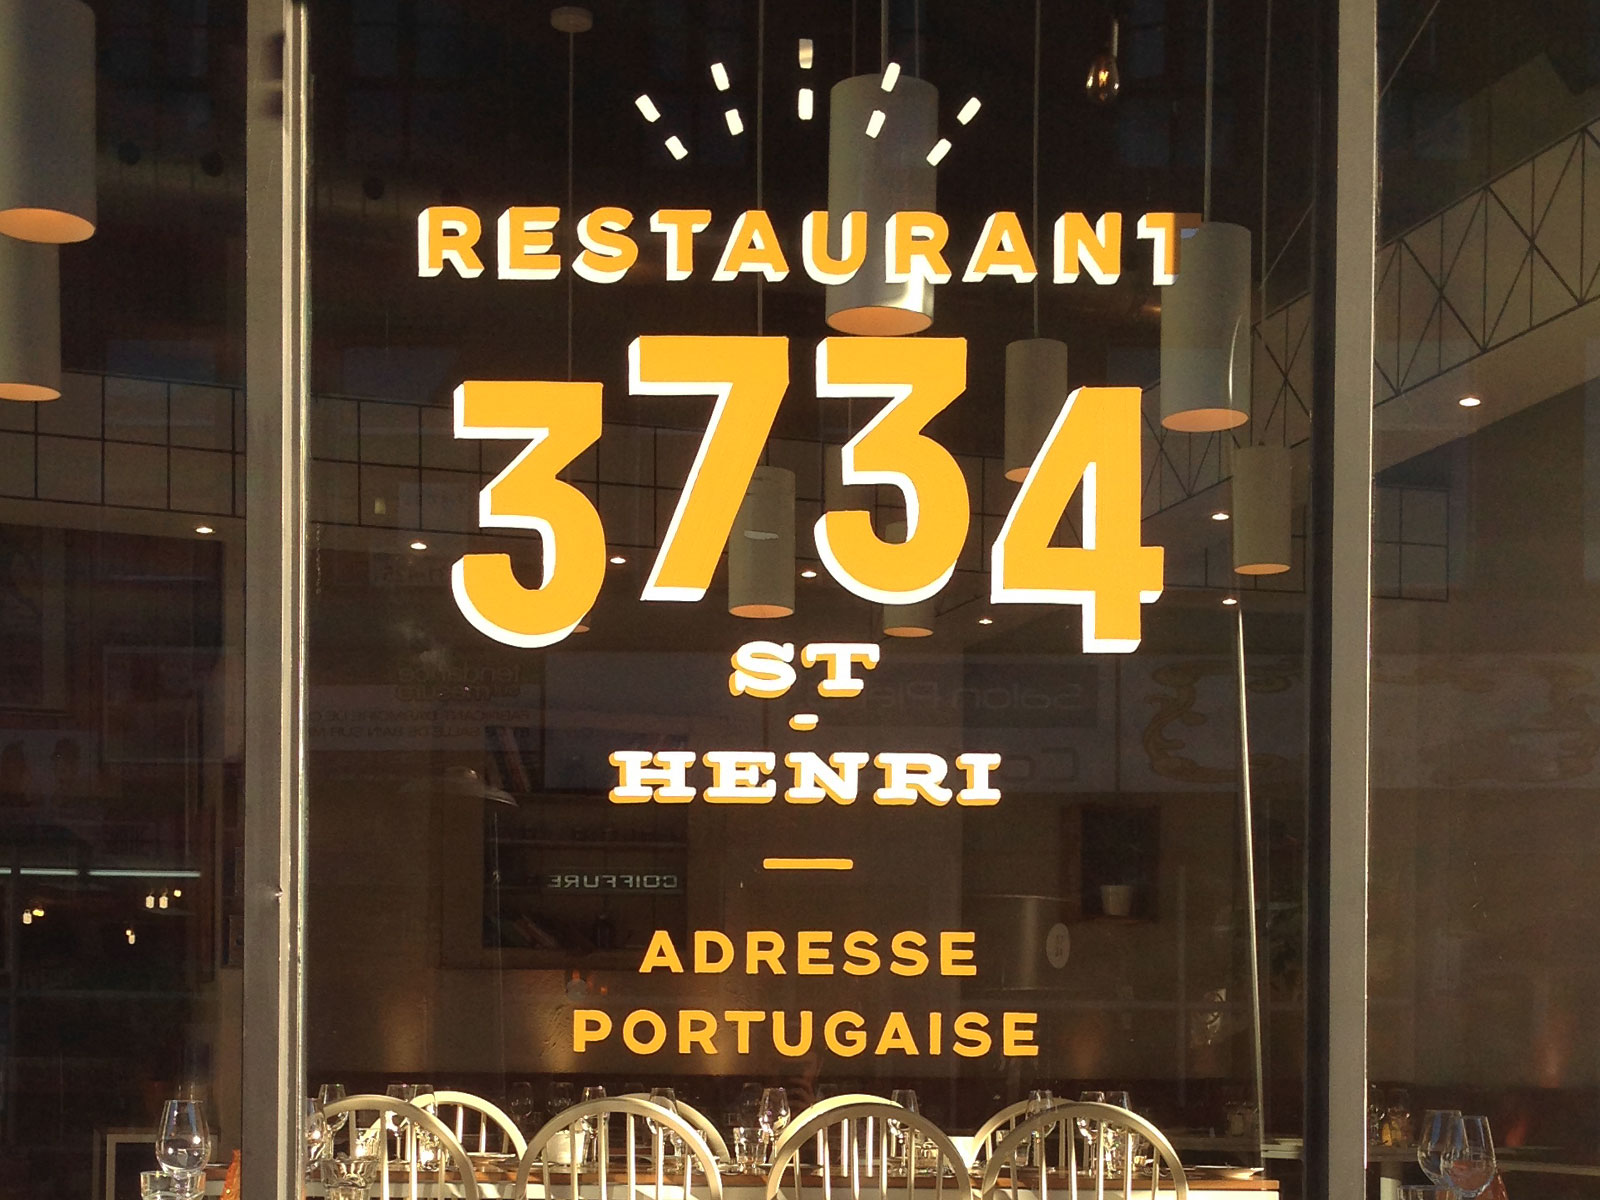 Restaurant 3734 window